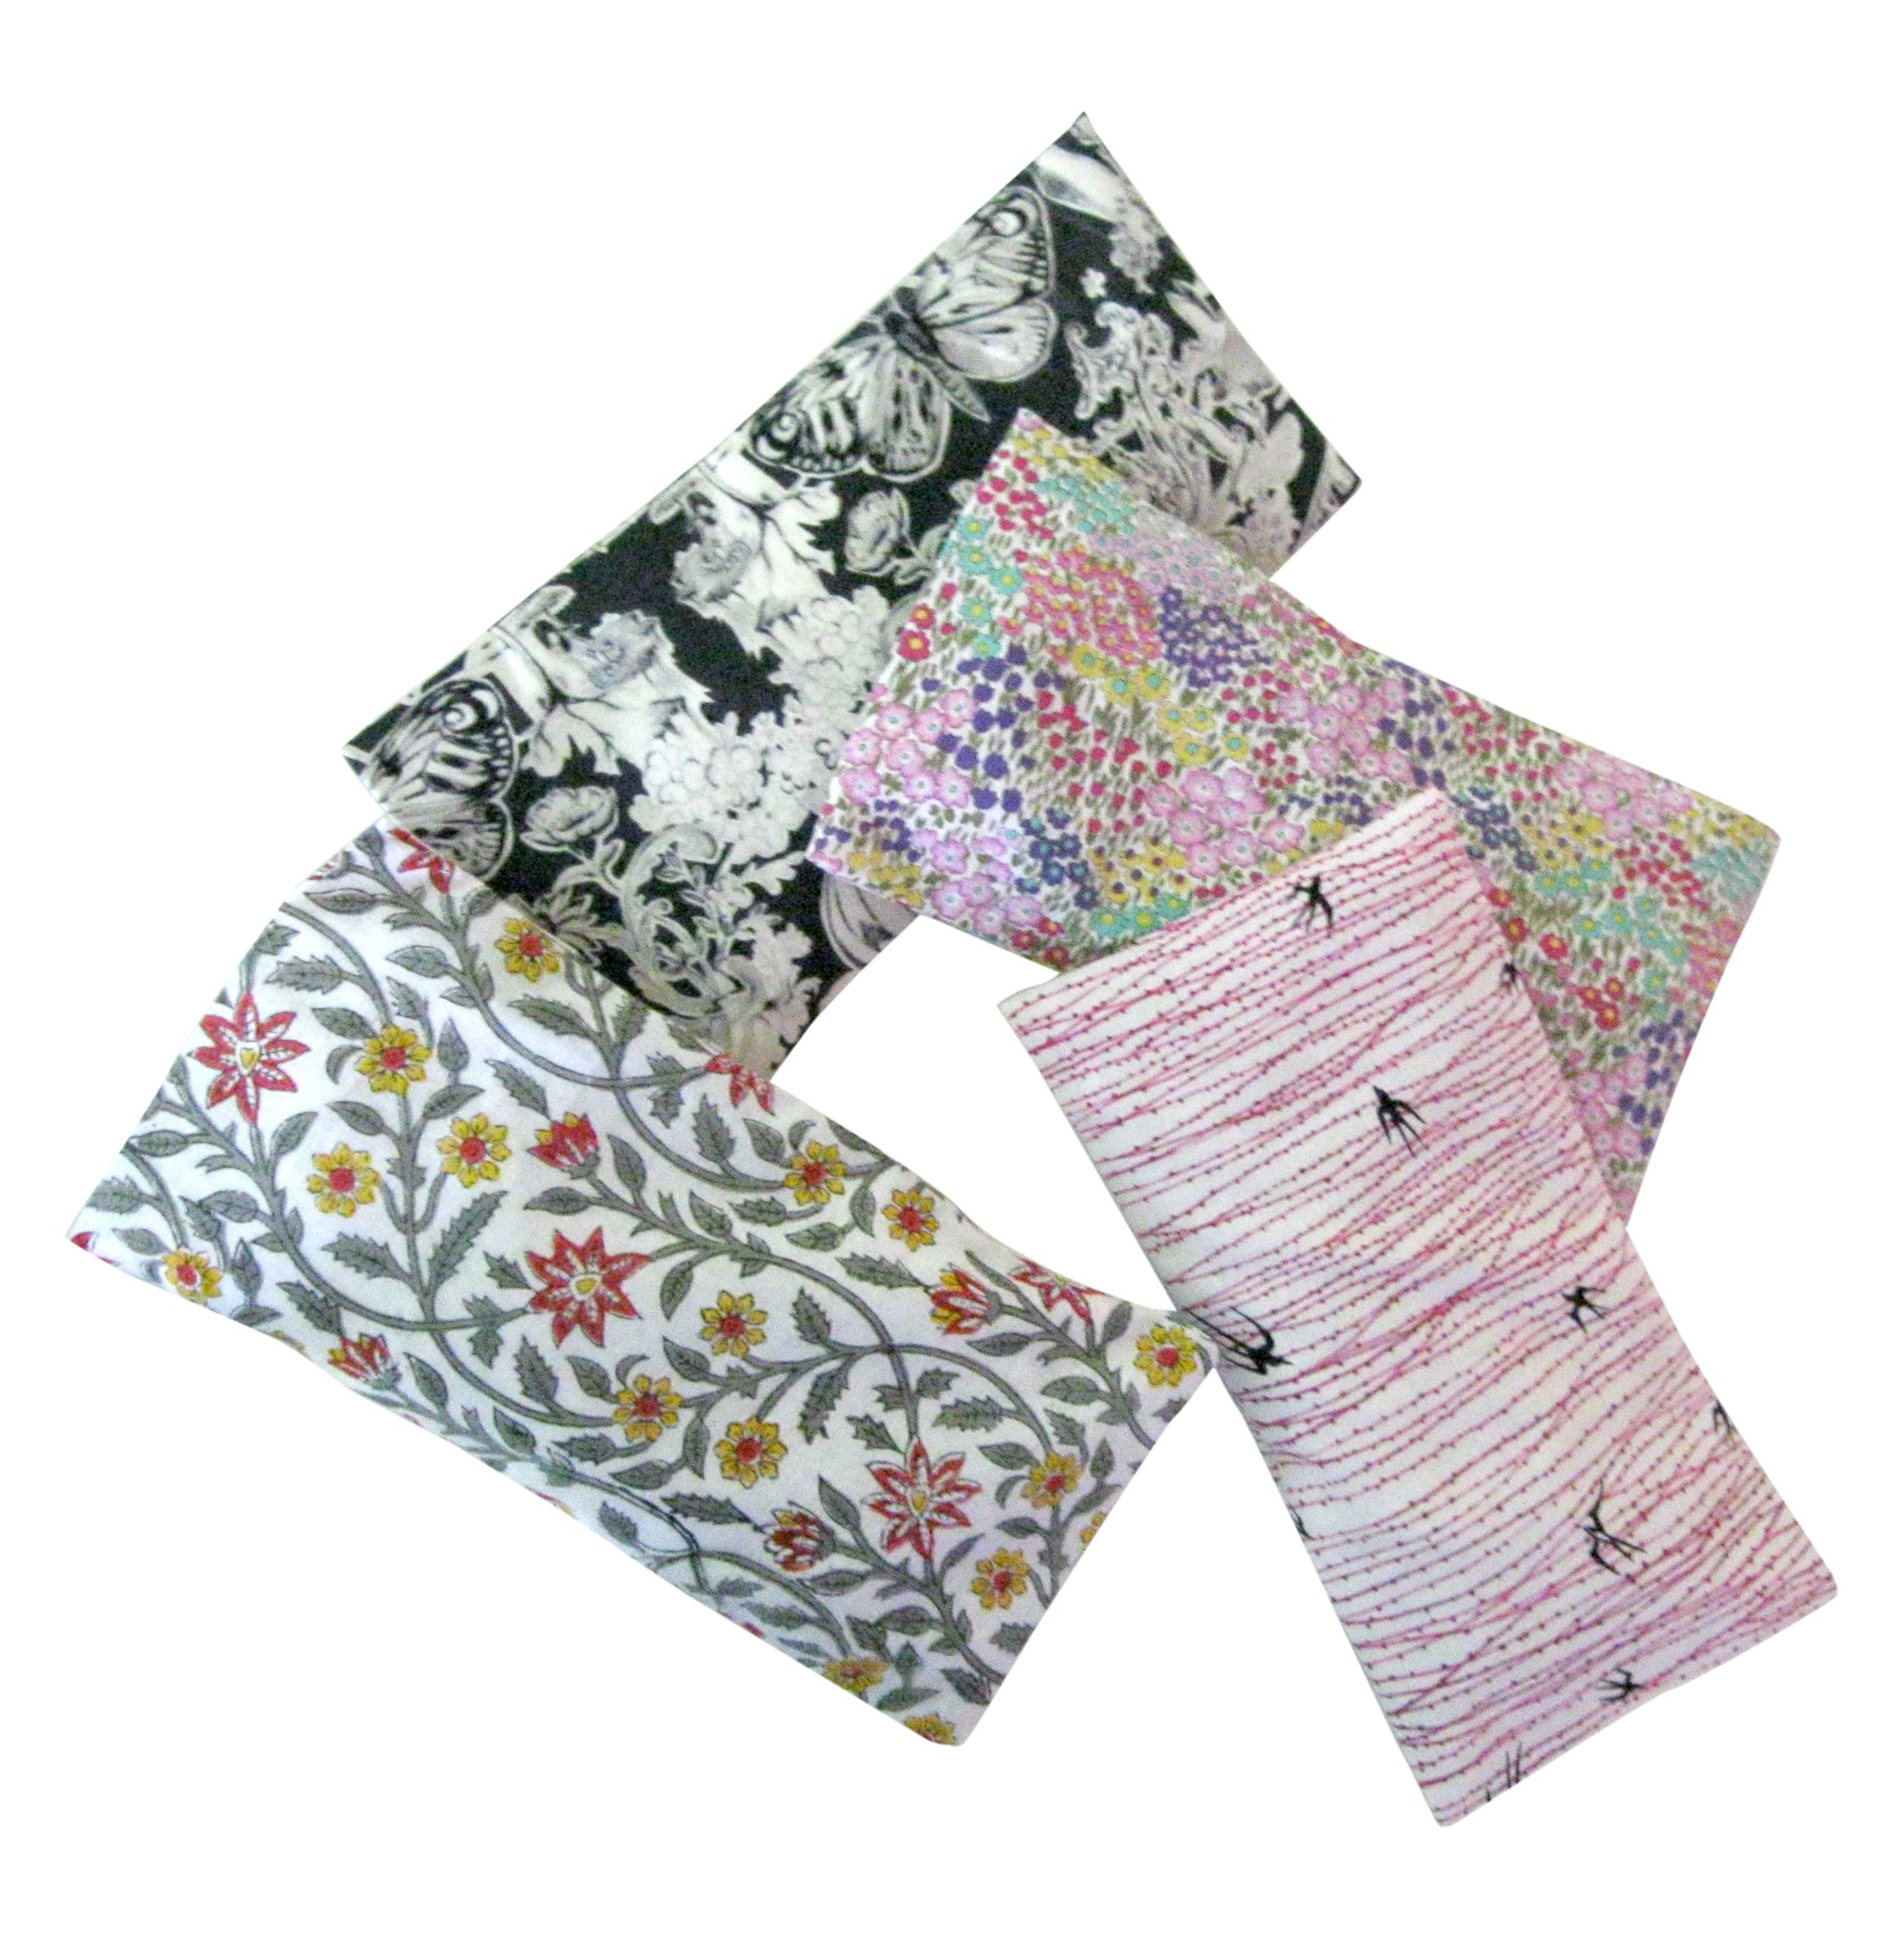 Aromatherapy Eye Pillow - Bundle of (4) - 4.5 x 9 - Organic Lavender Chamomile Flax Cotton - Removable Cover Washable - pink gray black birds flowers by Peacegoods